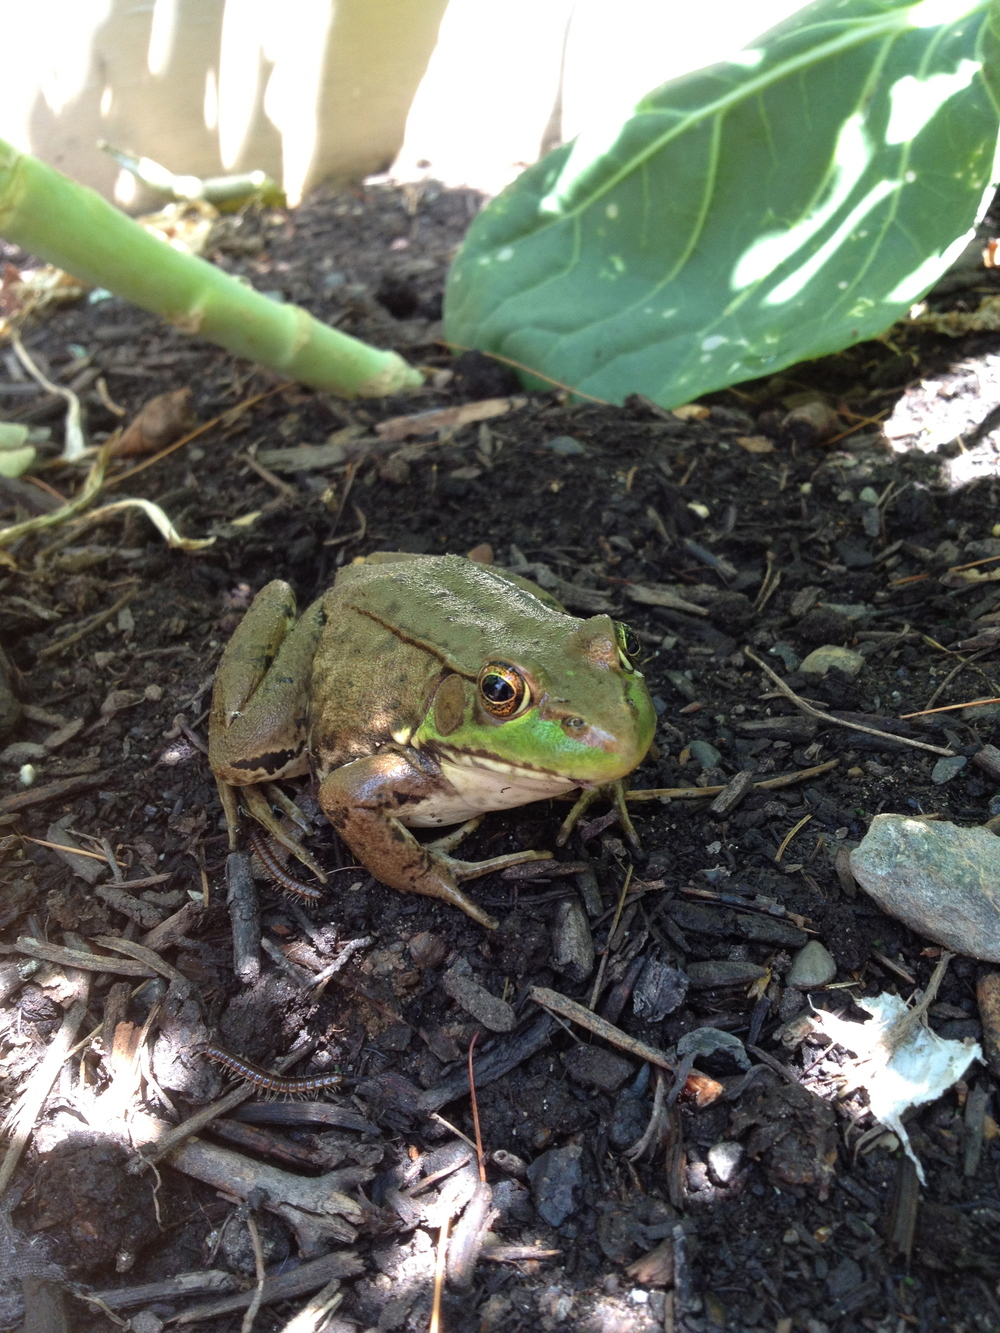 A frog came by to keep me company.